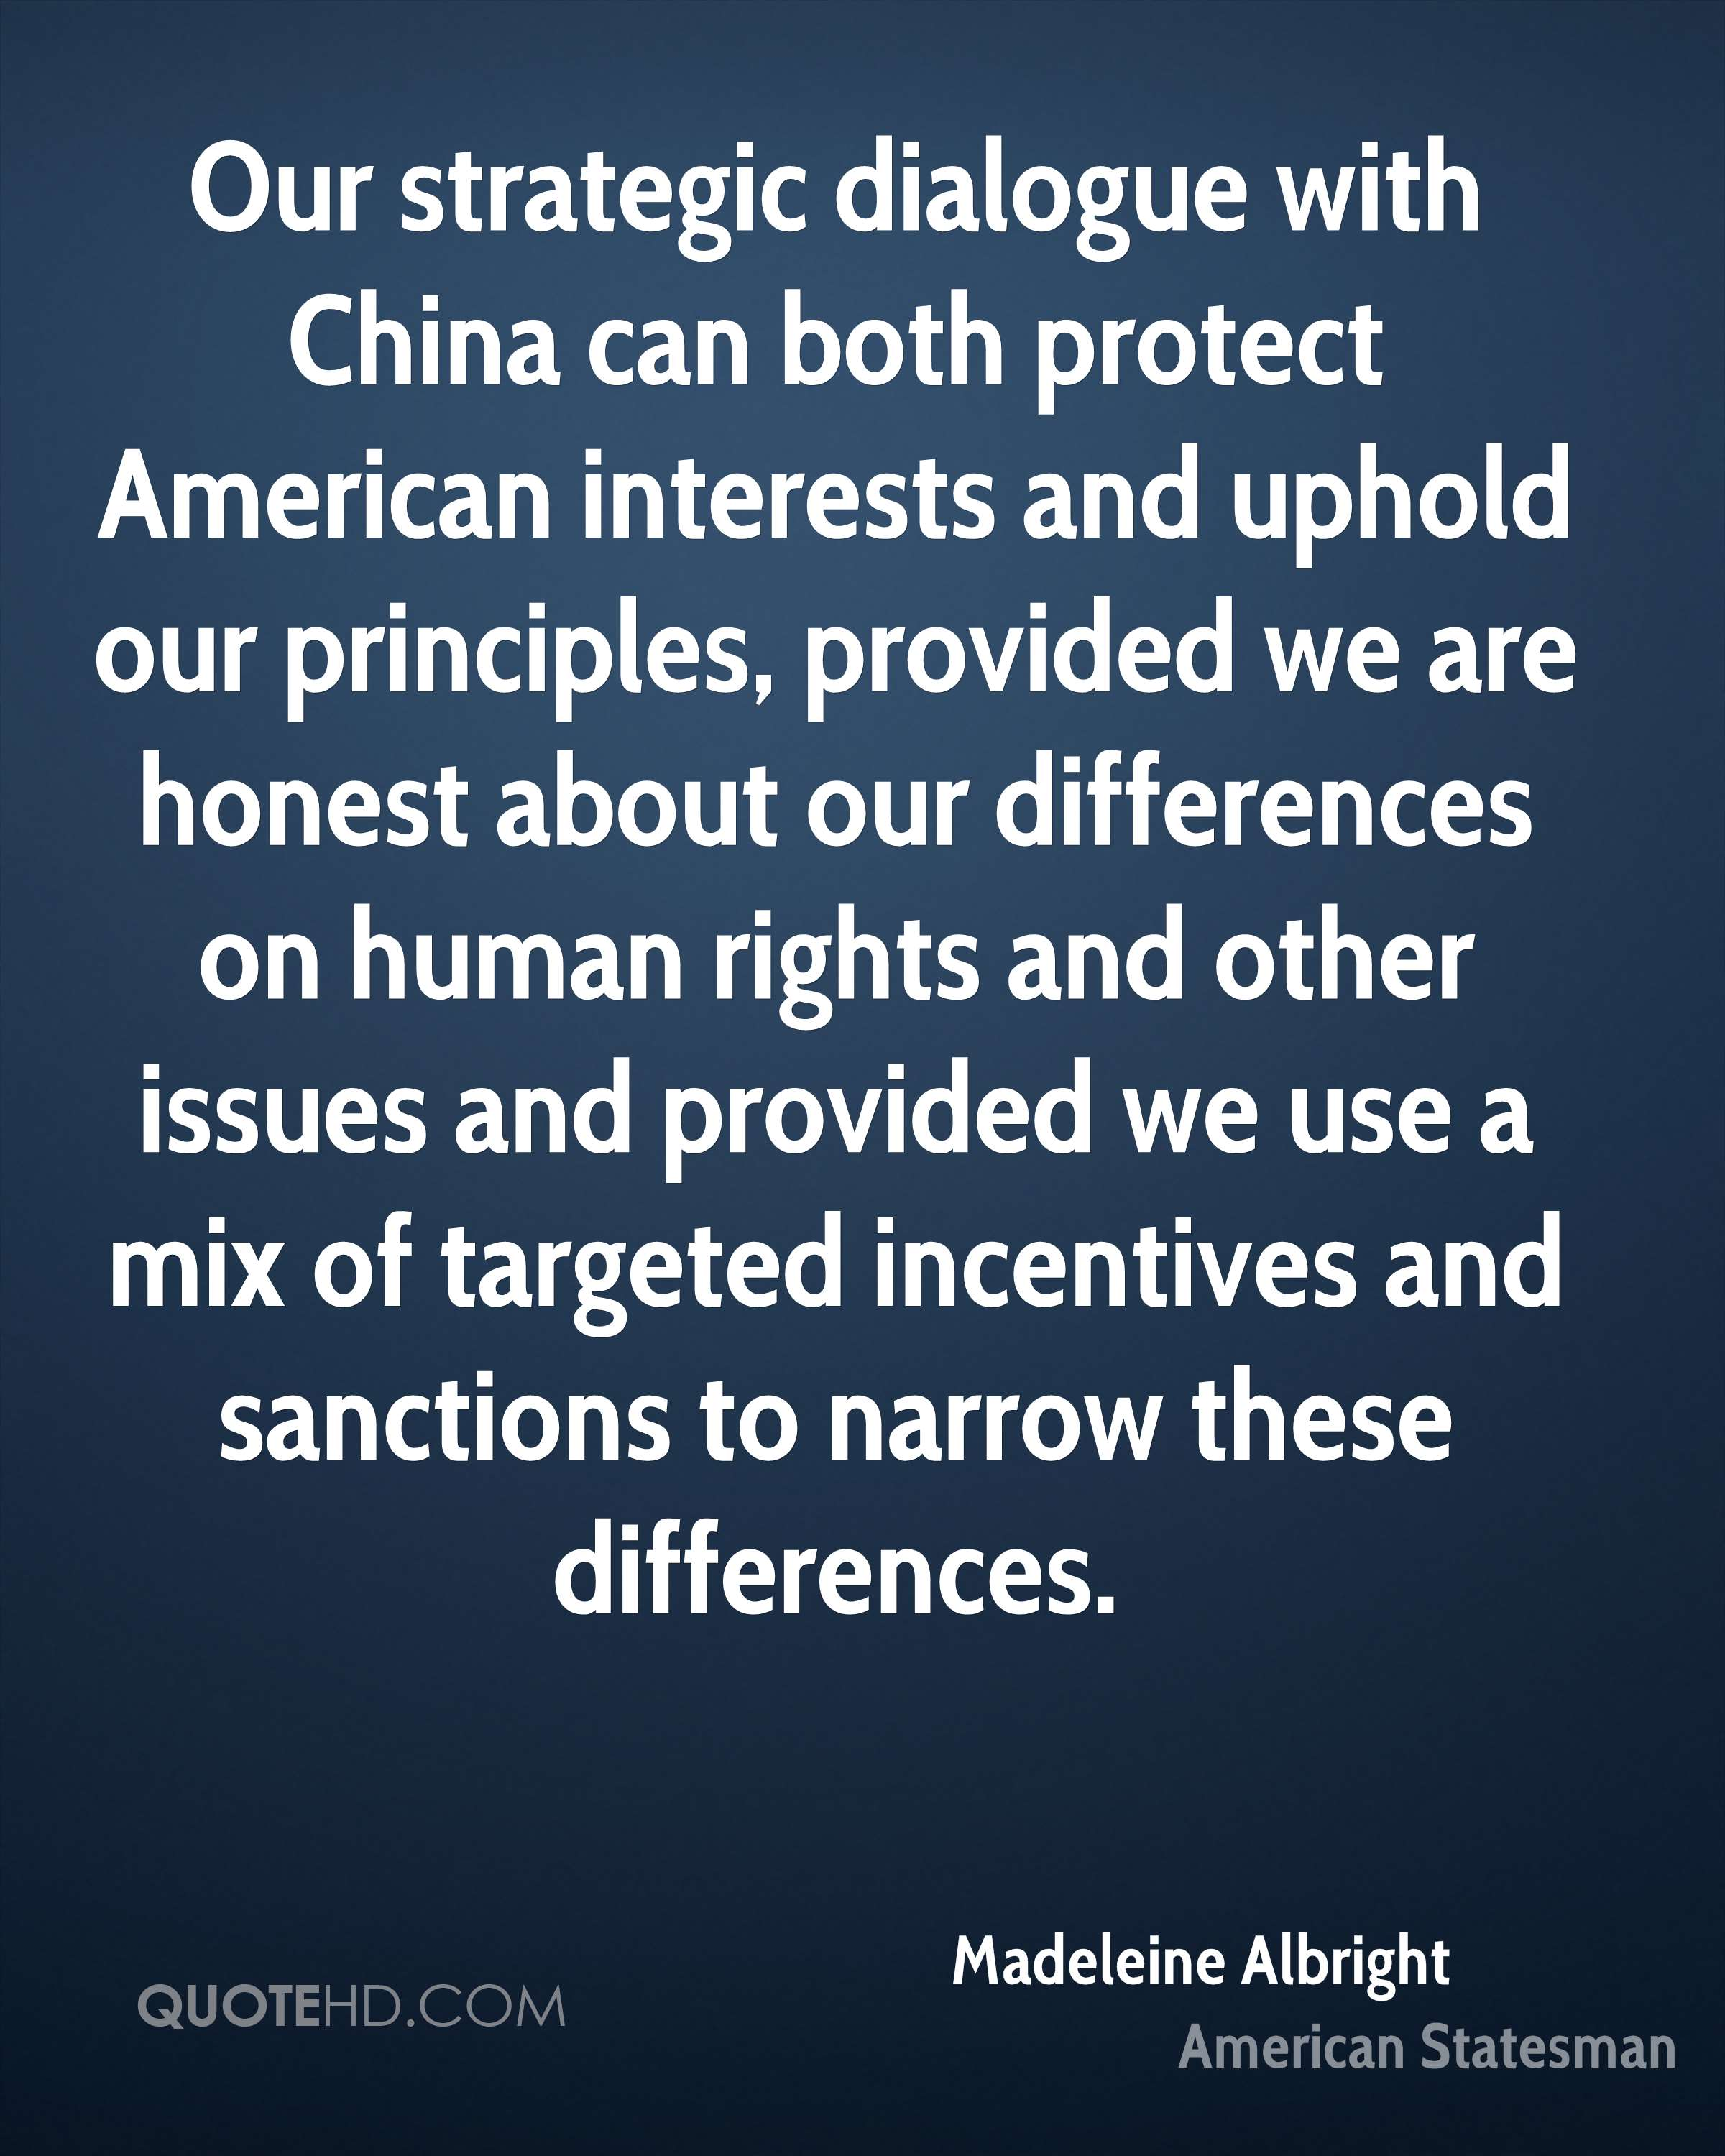 Our strategic dialogue with China can both protect American interests and uphold our principles, provided we are honest about our differences on human rights and other issues and provided we use a mix of targeted incentives and sanctions to narrow these differences.